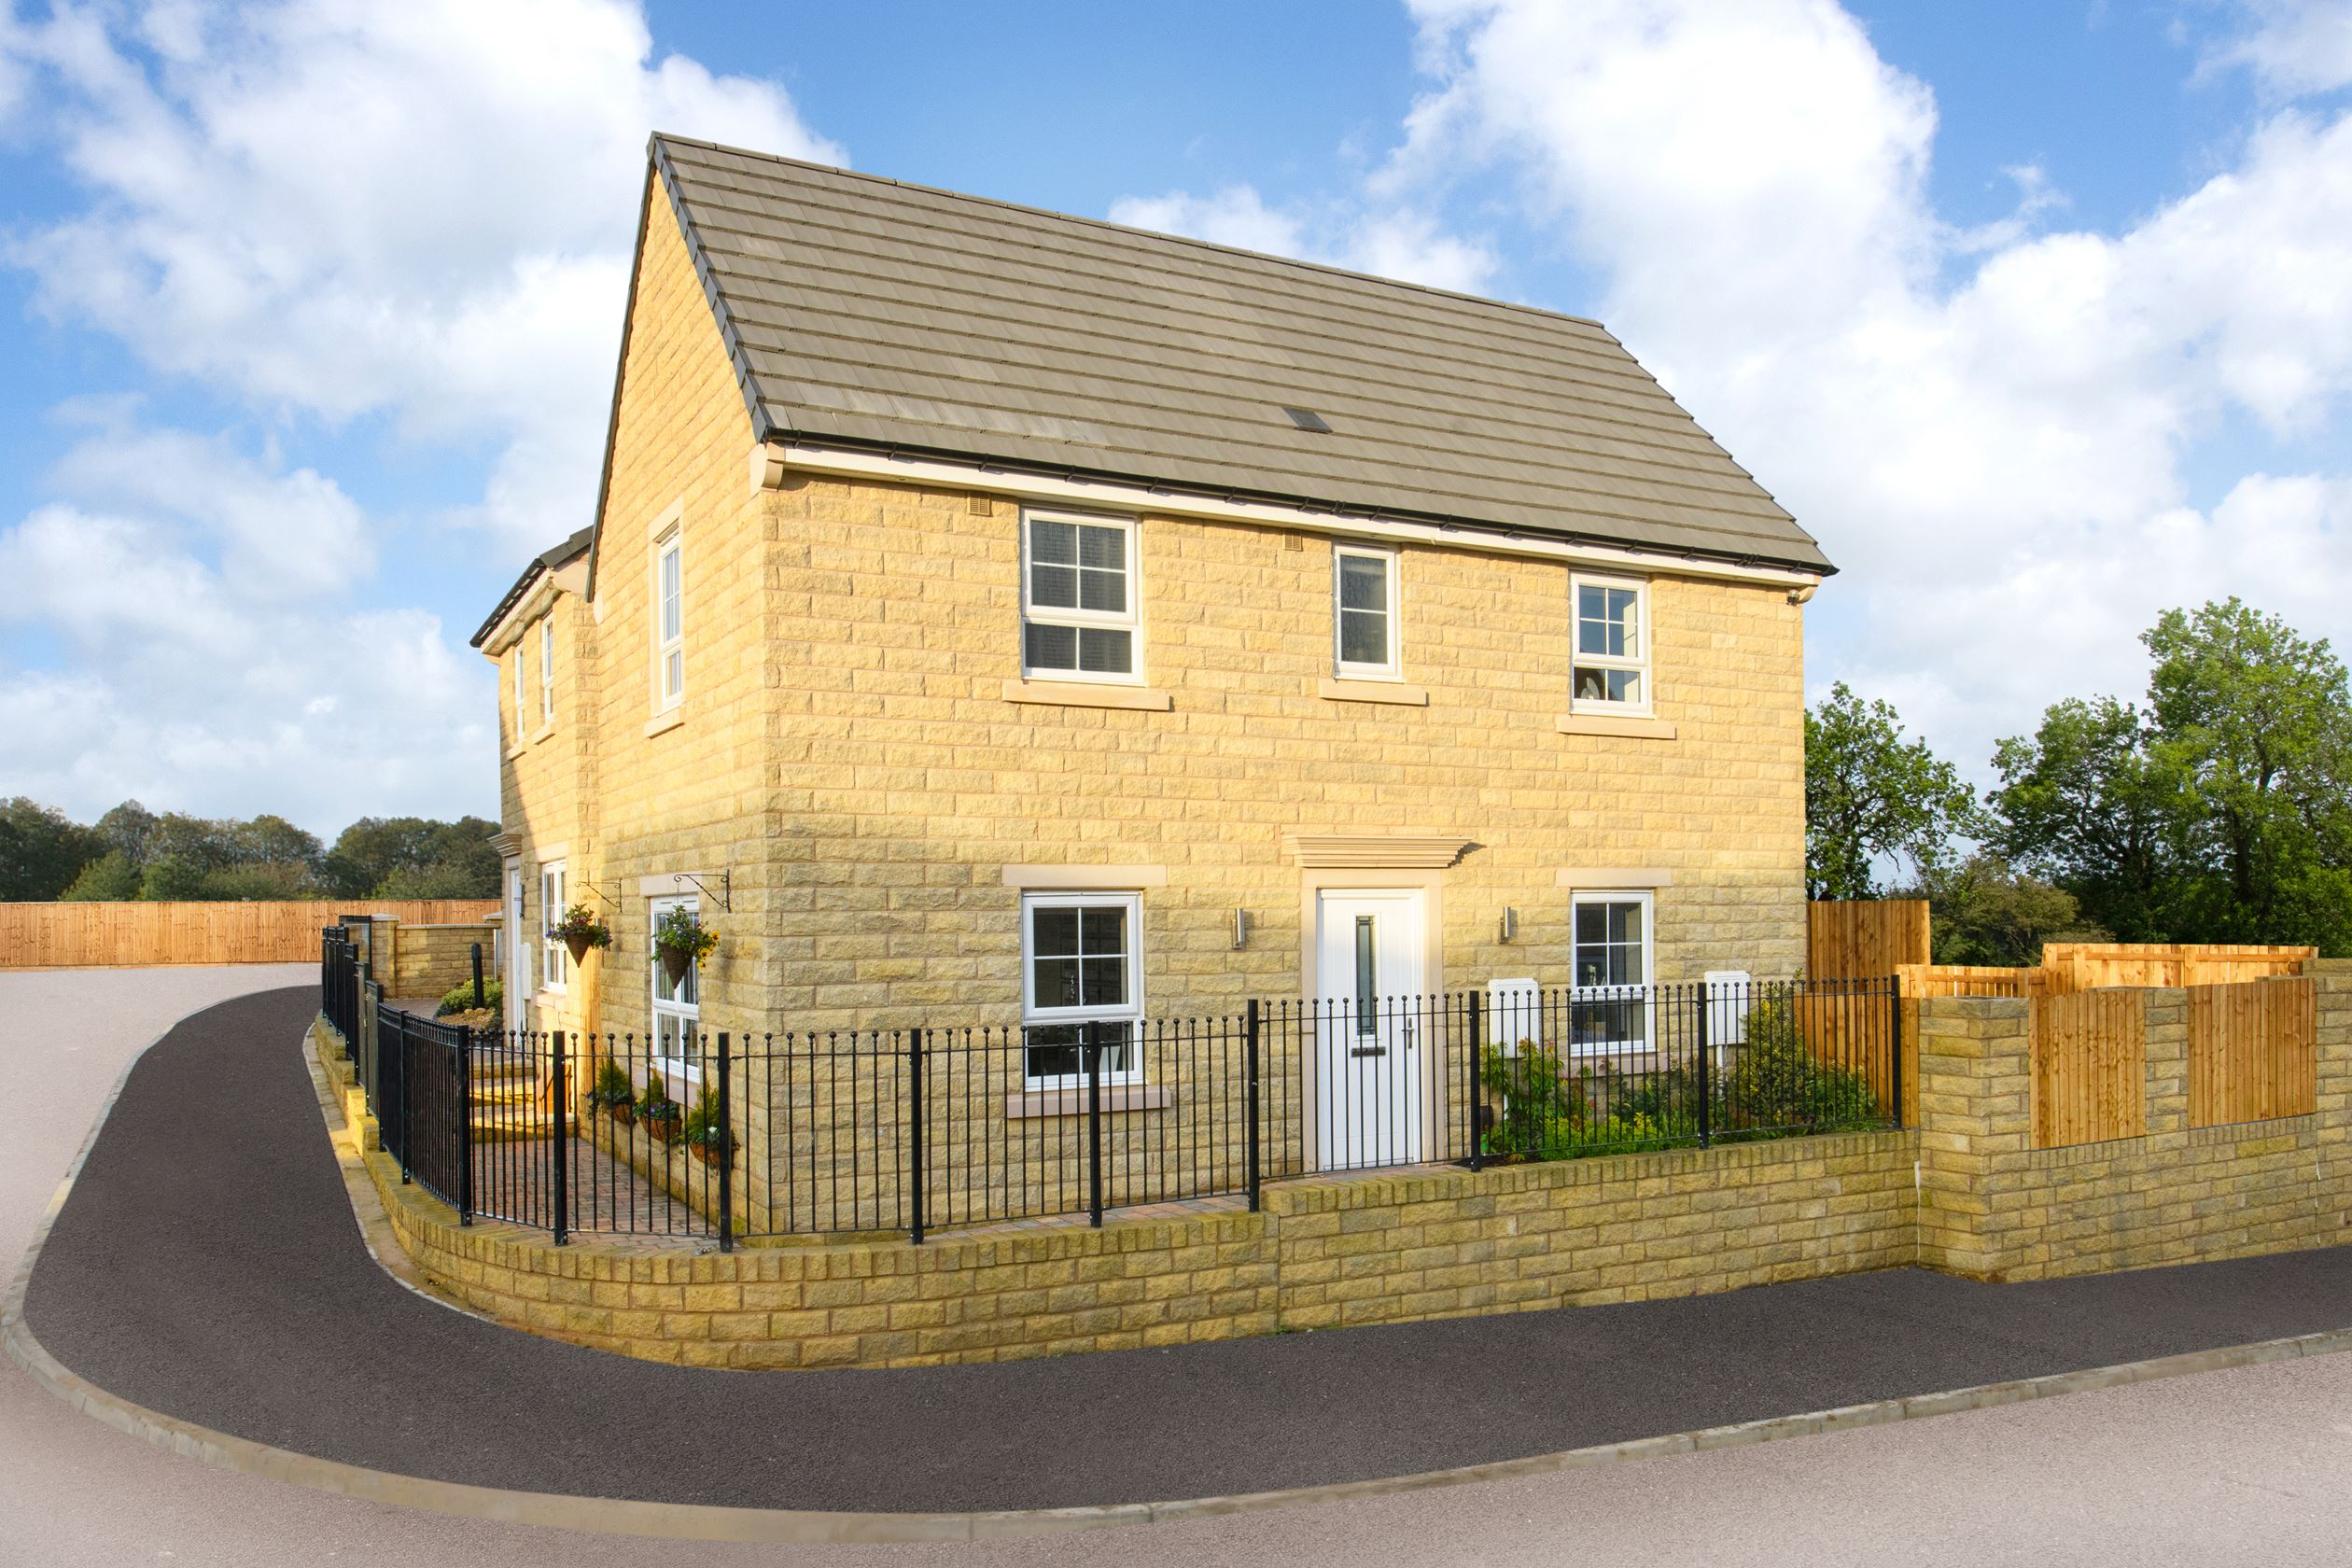 External view Moresby stone 3 bed semi-detached home